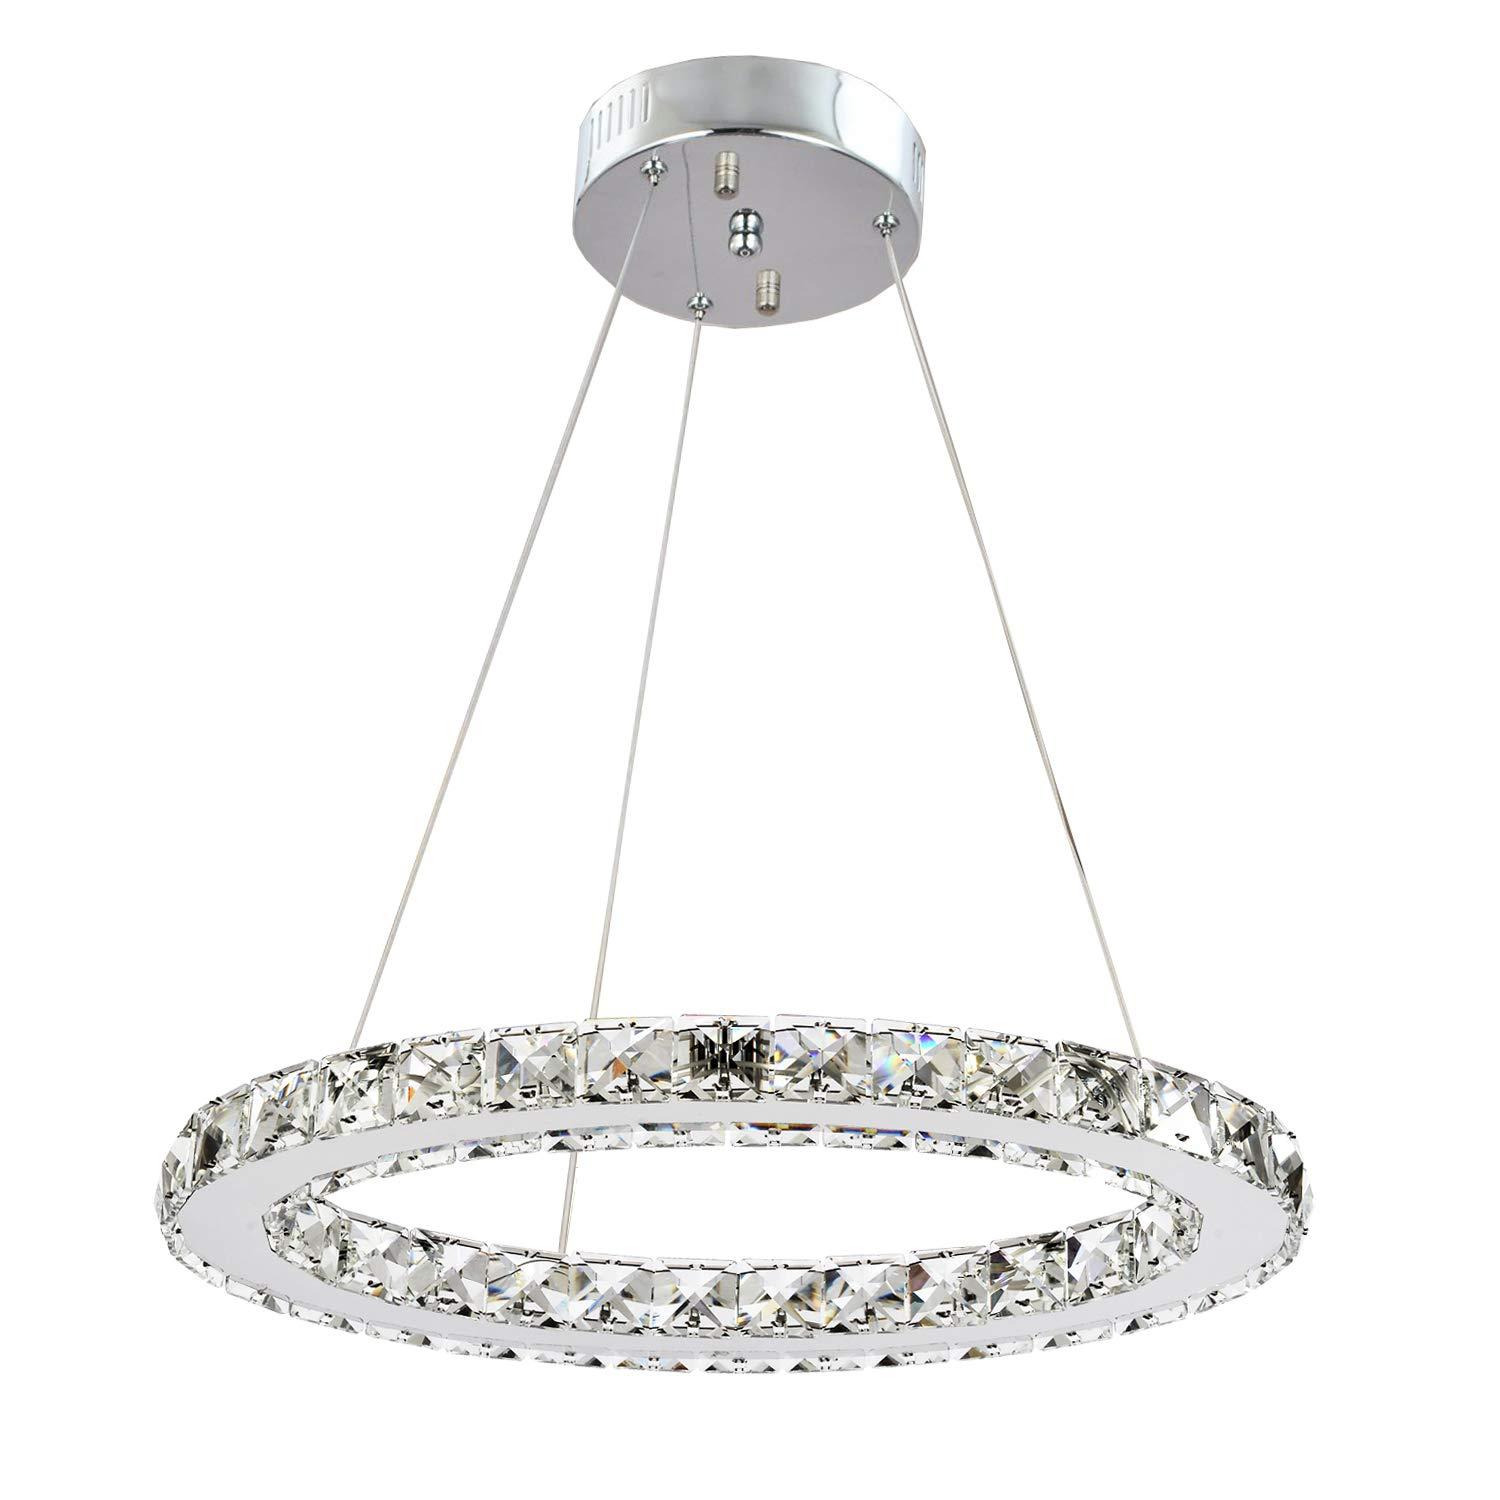 Gdns modern crystals chandeliersceiling lights fixturespendant lighting for living room bedroom restaurant porch dining roomone rings one ringdia 30cm